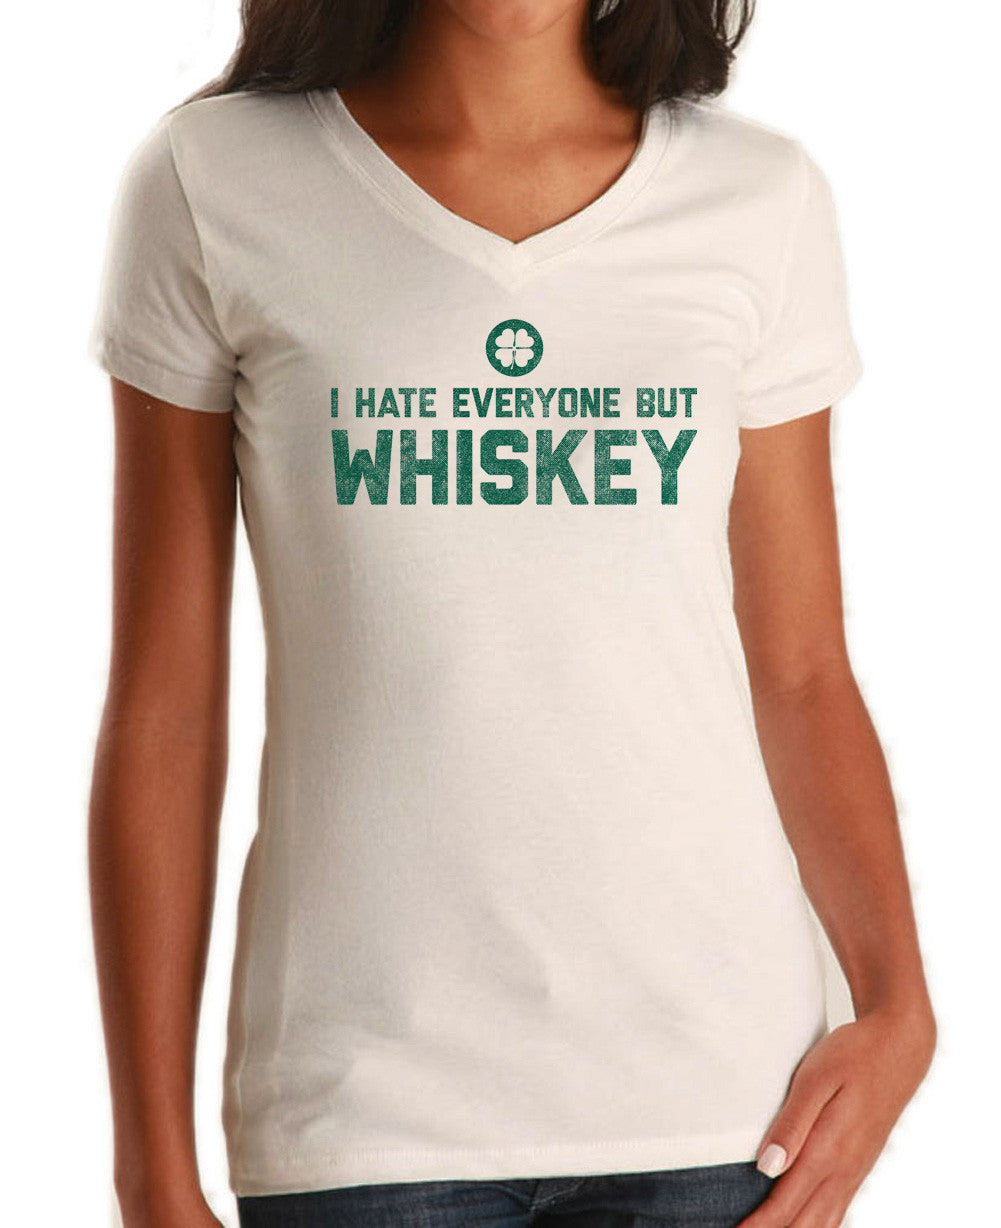 Women's I Hate Everyone But Whiskey Vneck T-Shirt - Juniors Fit